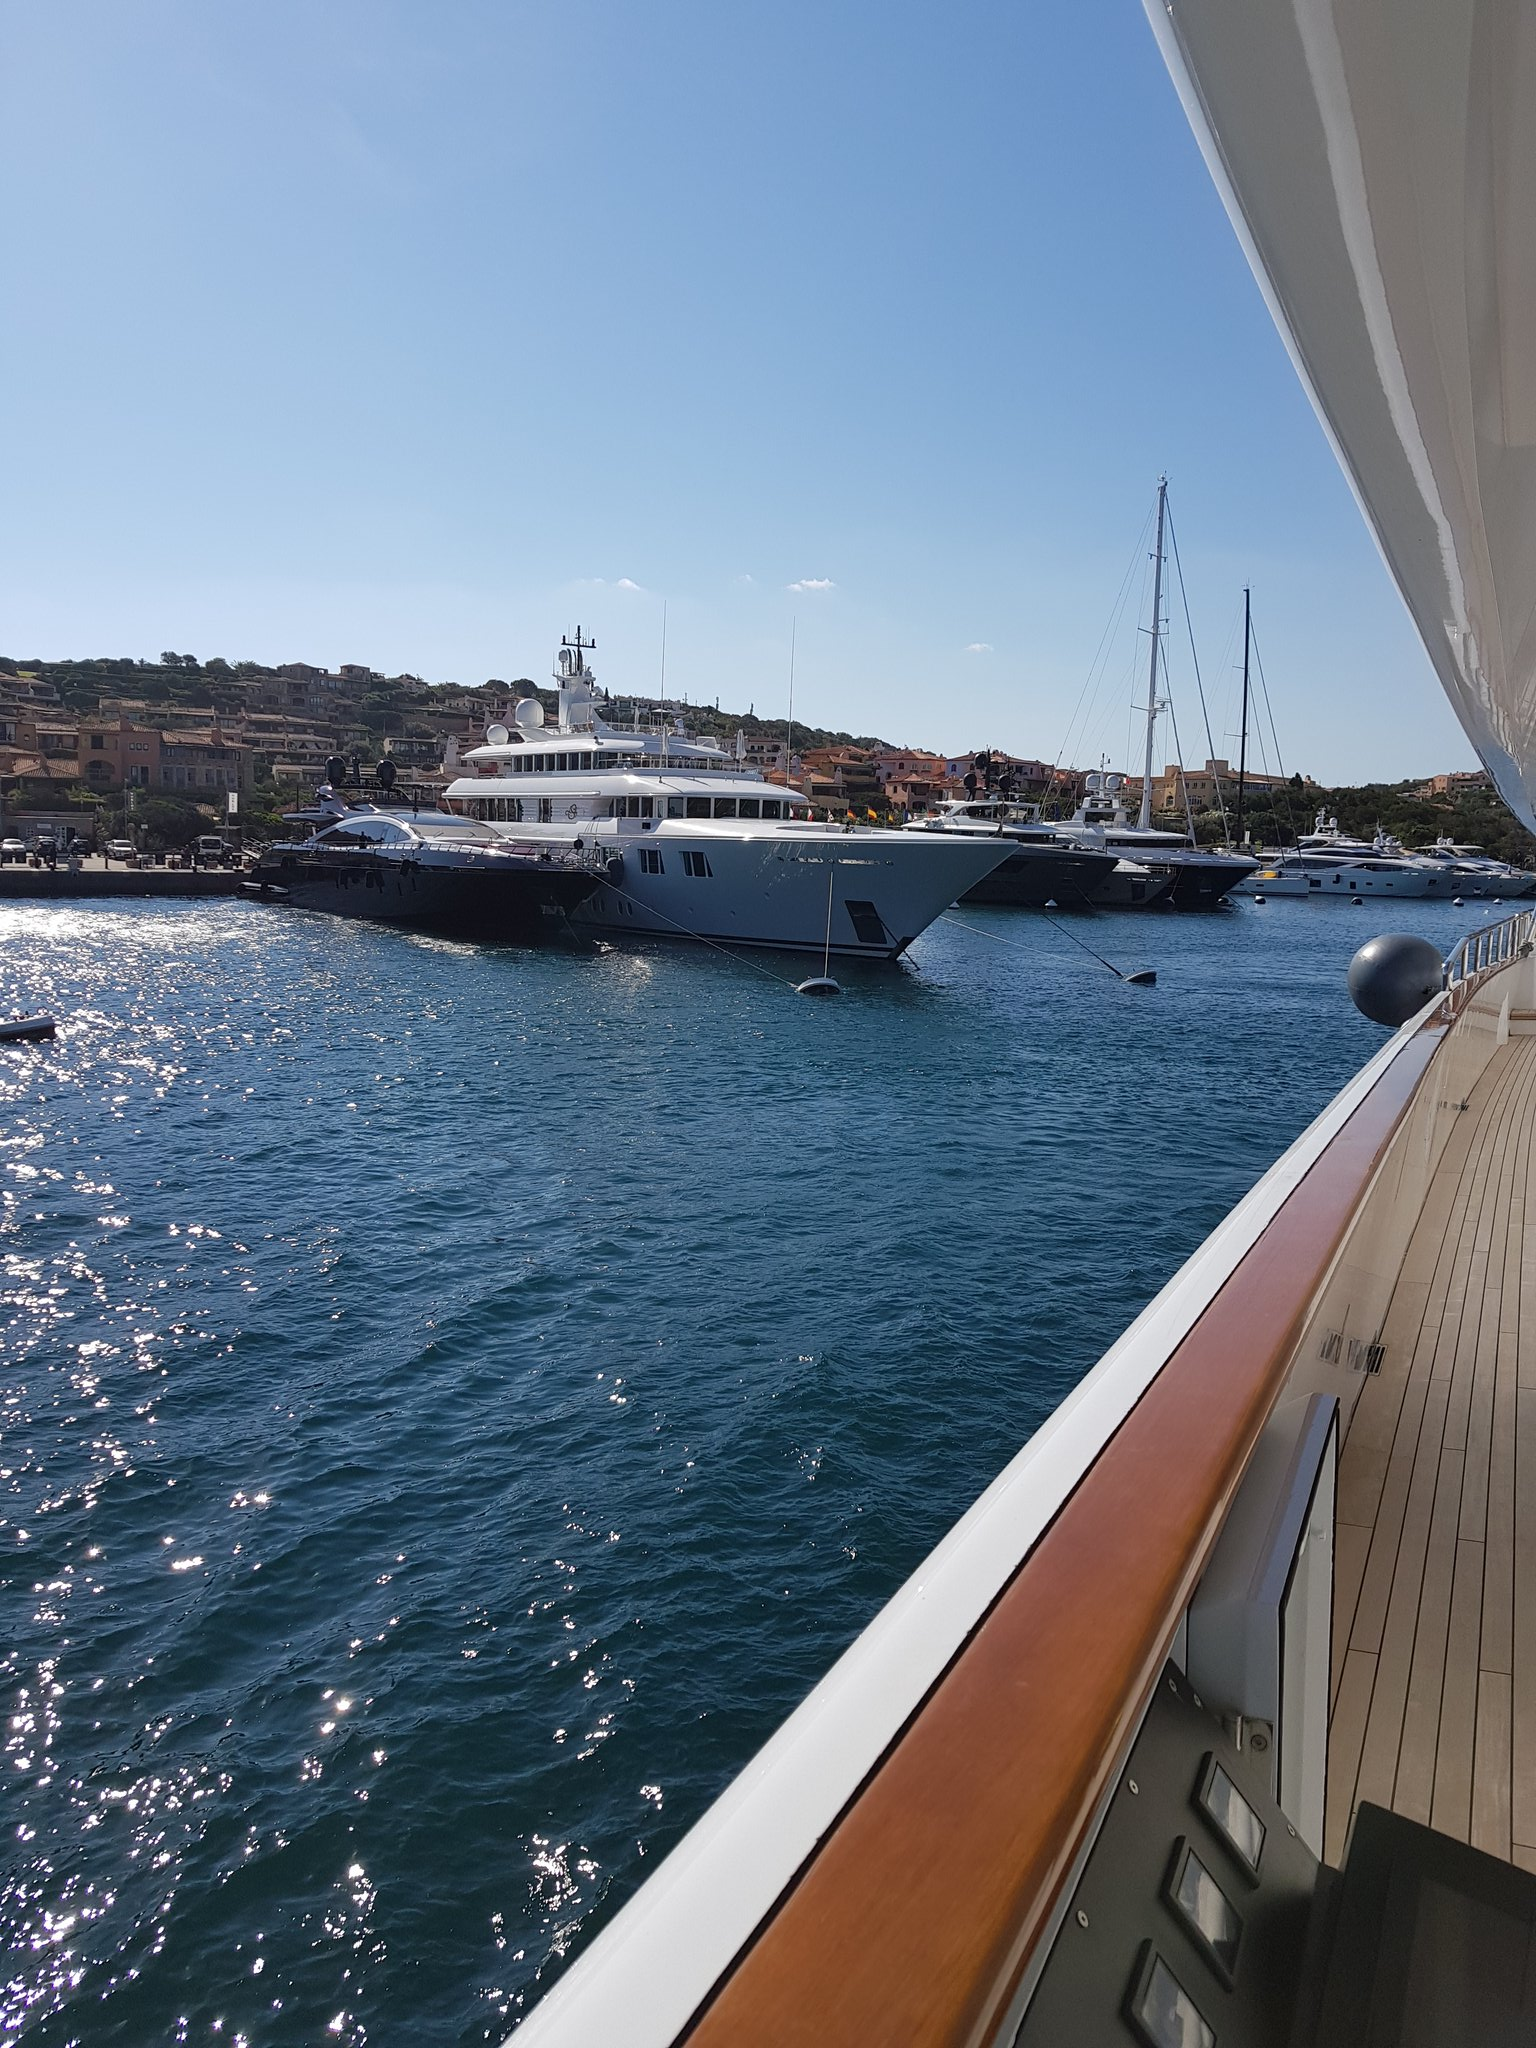 Leaving Porto Cervo Sardinia to enter French waters of Corsica https://t.co/bxz2xobnC7